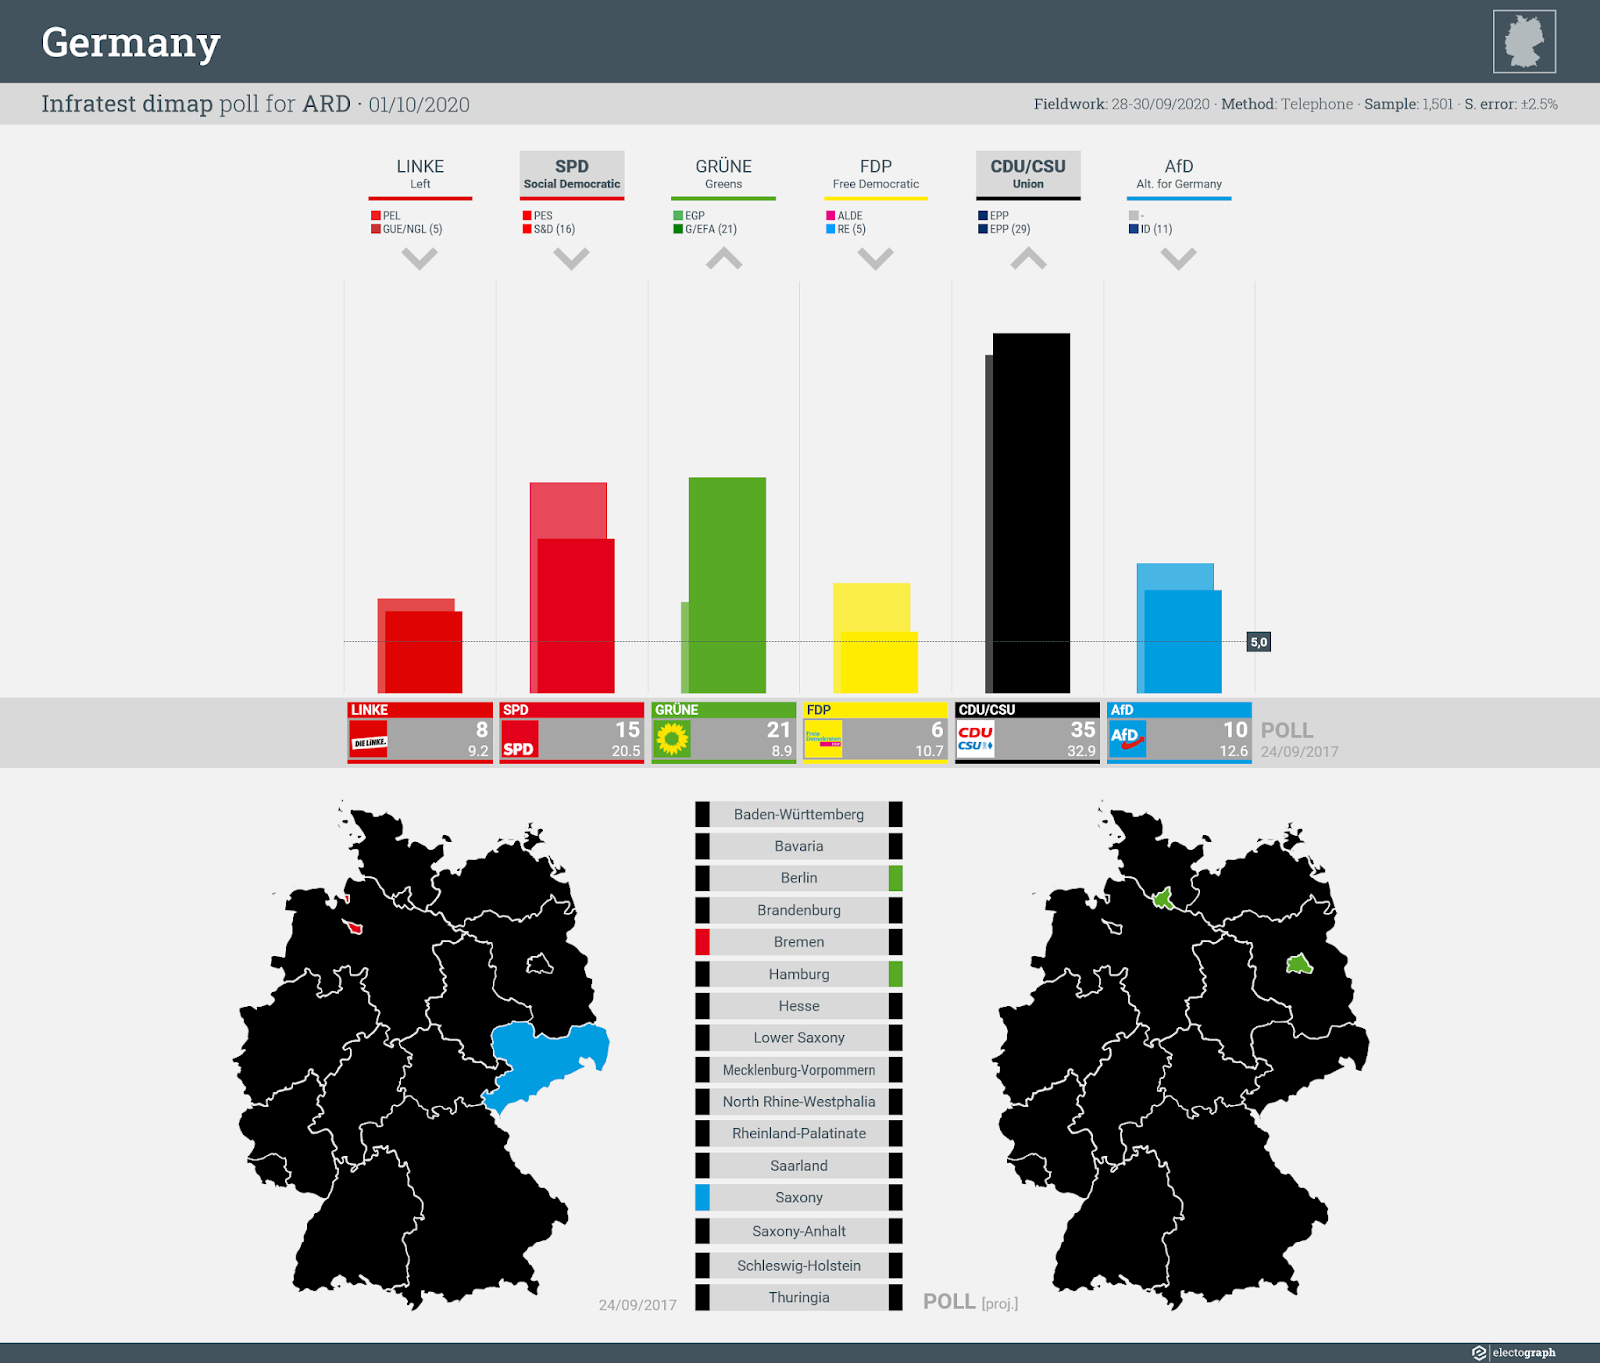 GERMANY: Infratest dimap poll chart for ARD, 1 October 2020